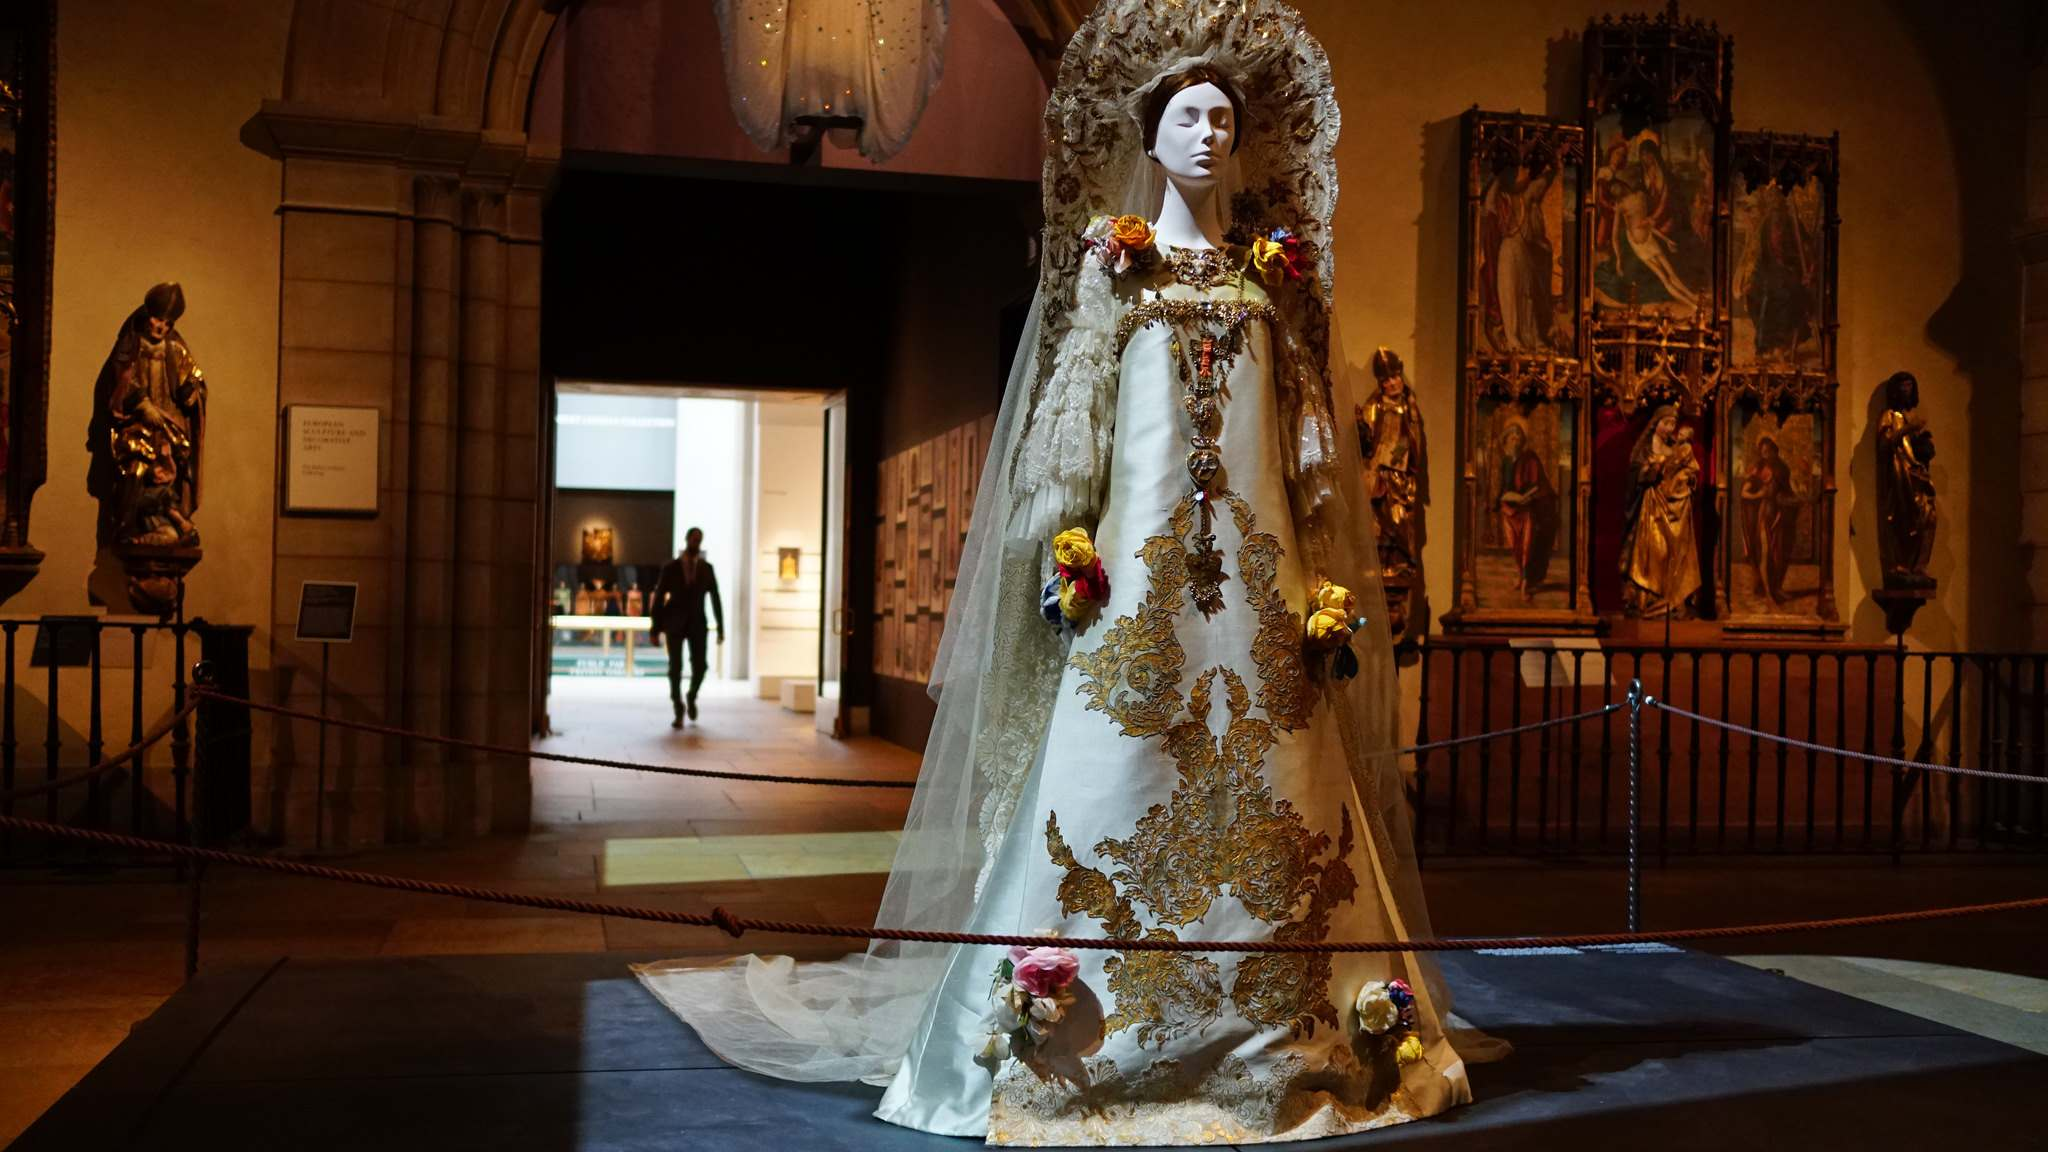 heavenly bodies1 Heavenly Bodies: Fashion and the Catholic Imagination in MET